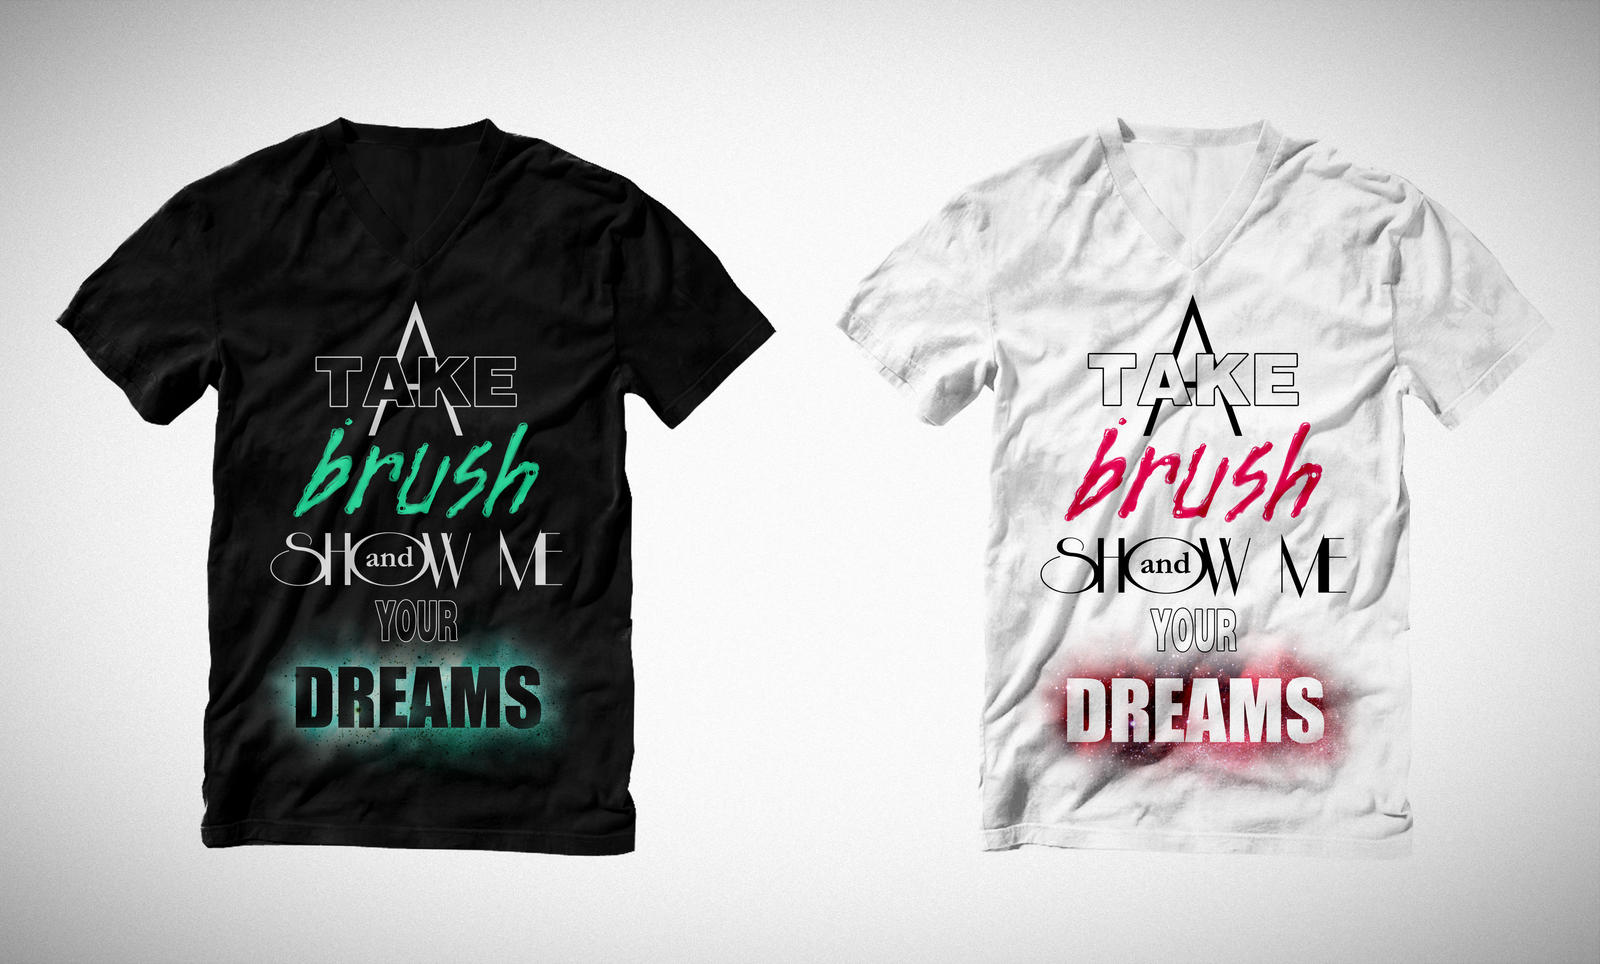 Take a brush and show me your dreams by Jesse-Gourgeon